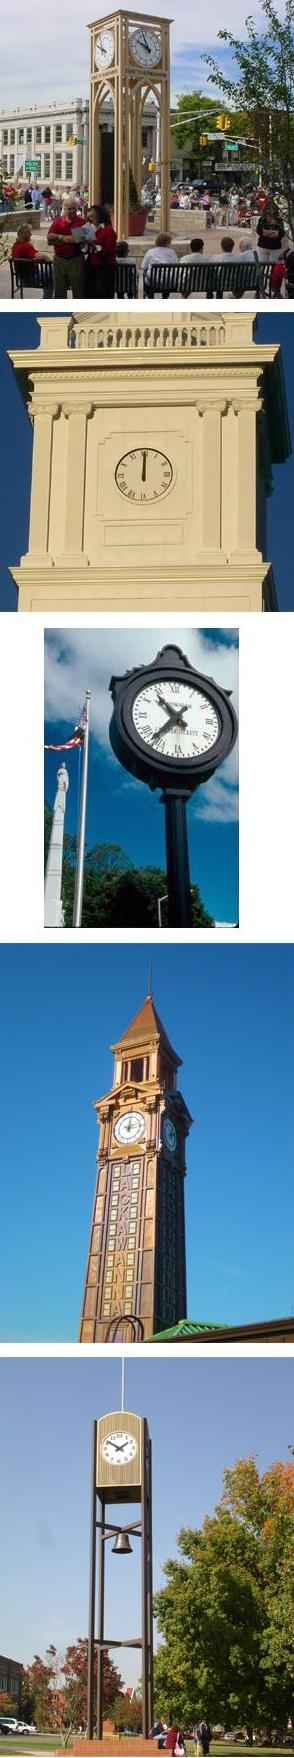 Clocks and Clock Towers